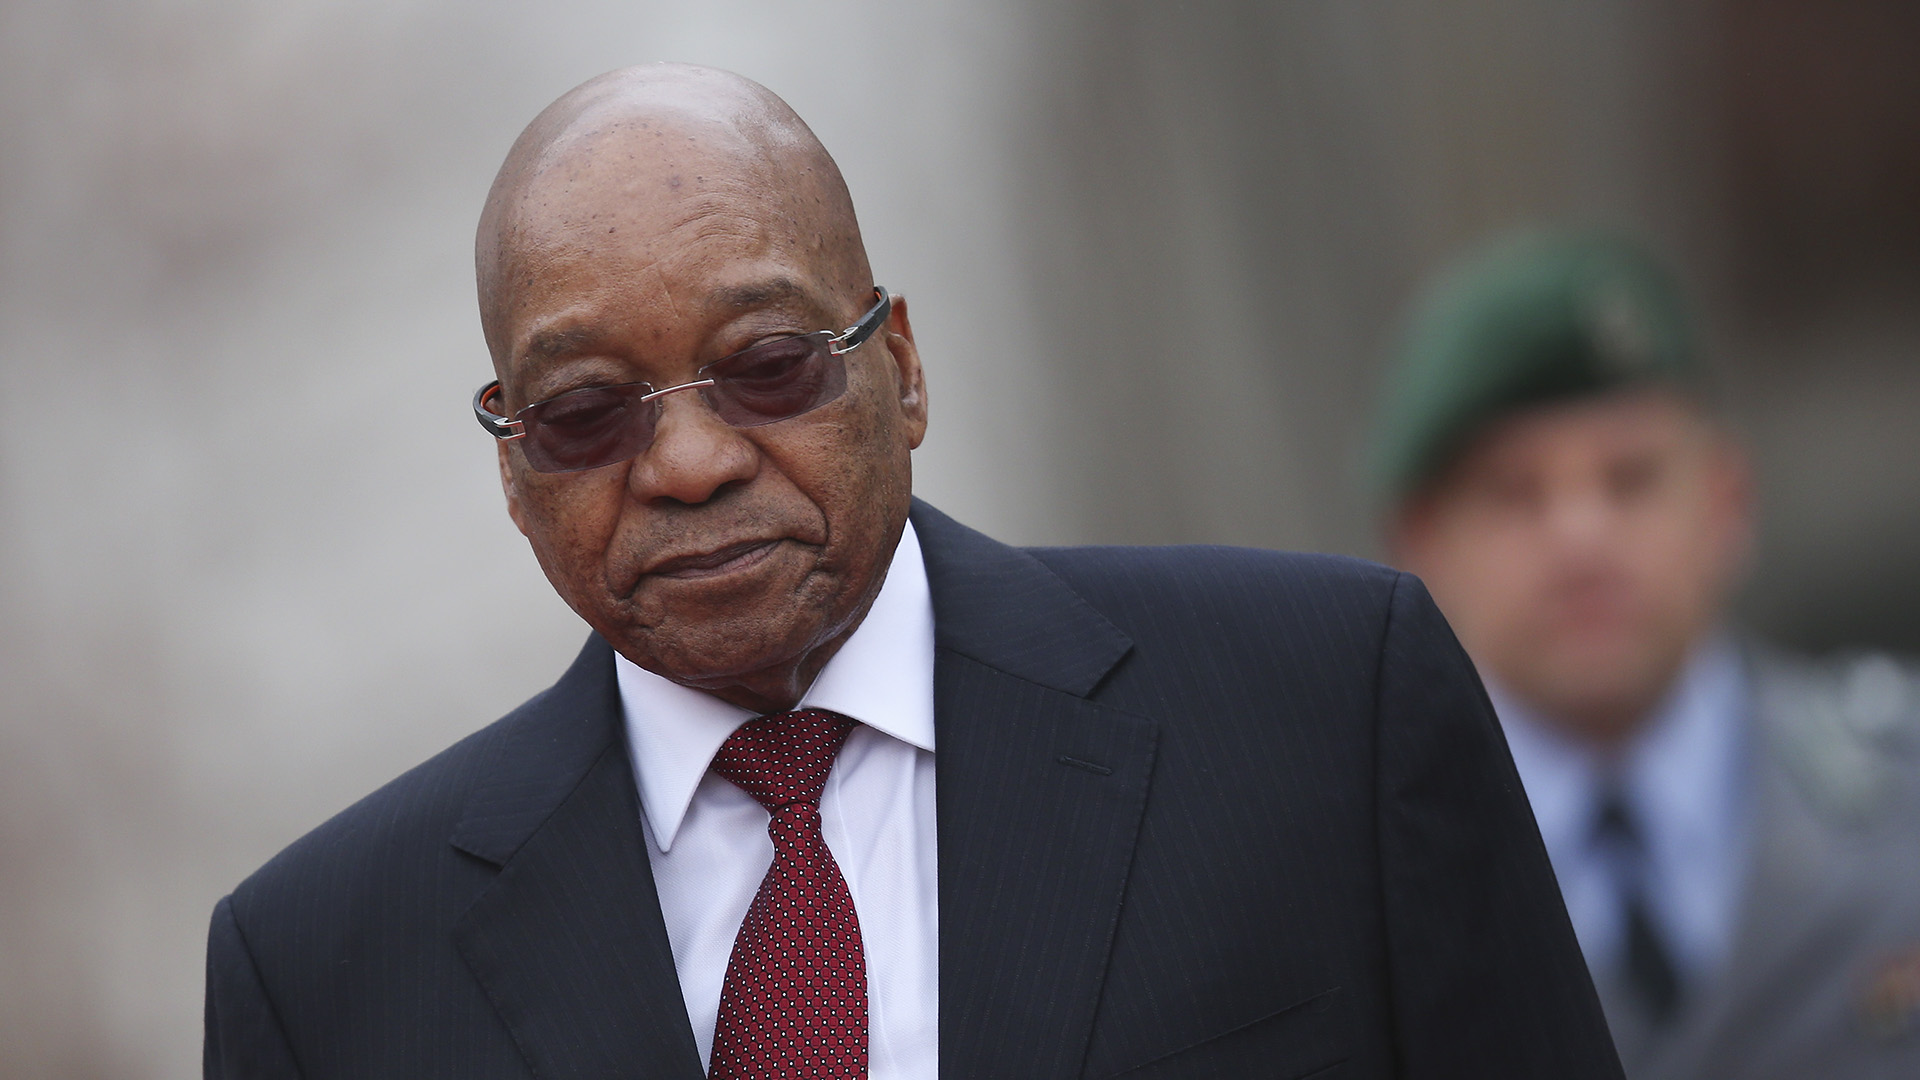 South Africa's Ex-President Zuma Turns Himself In For 15-month Prison Term